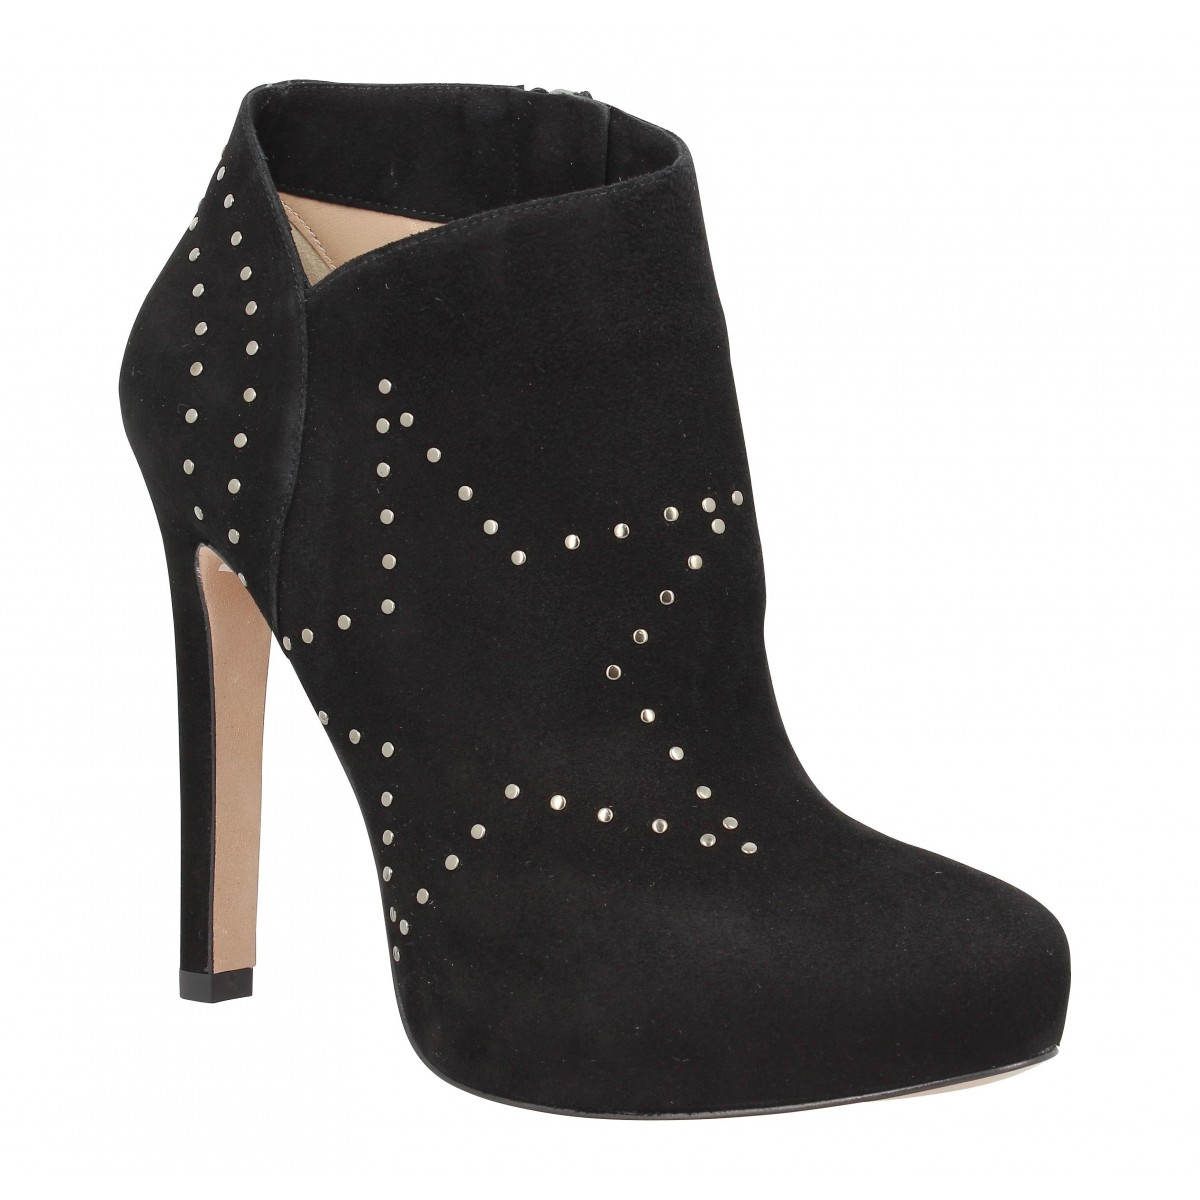 Bottines PURA LOPEZ 269 velours Noir